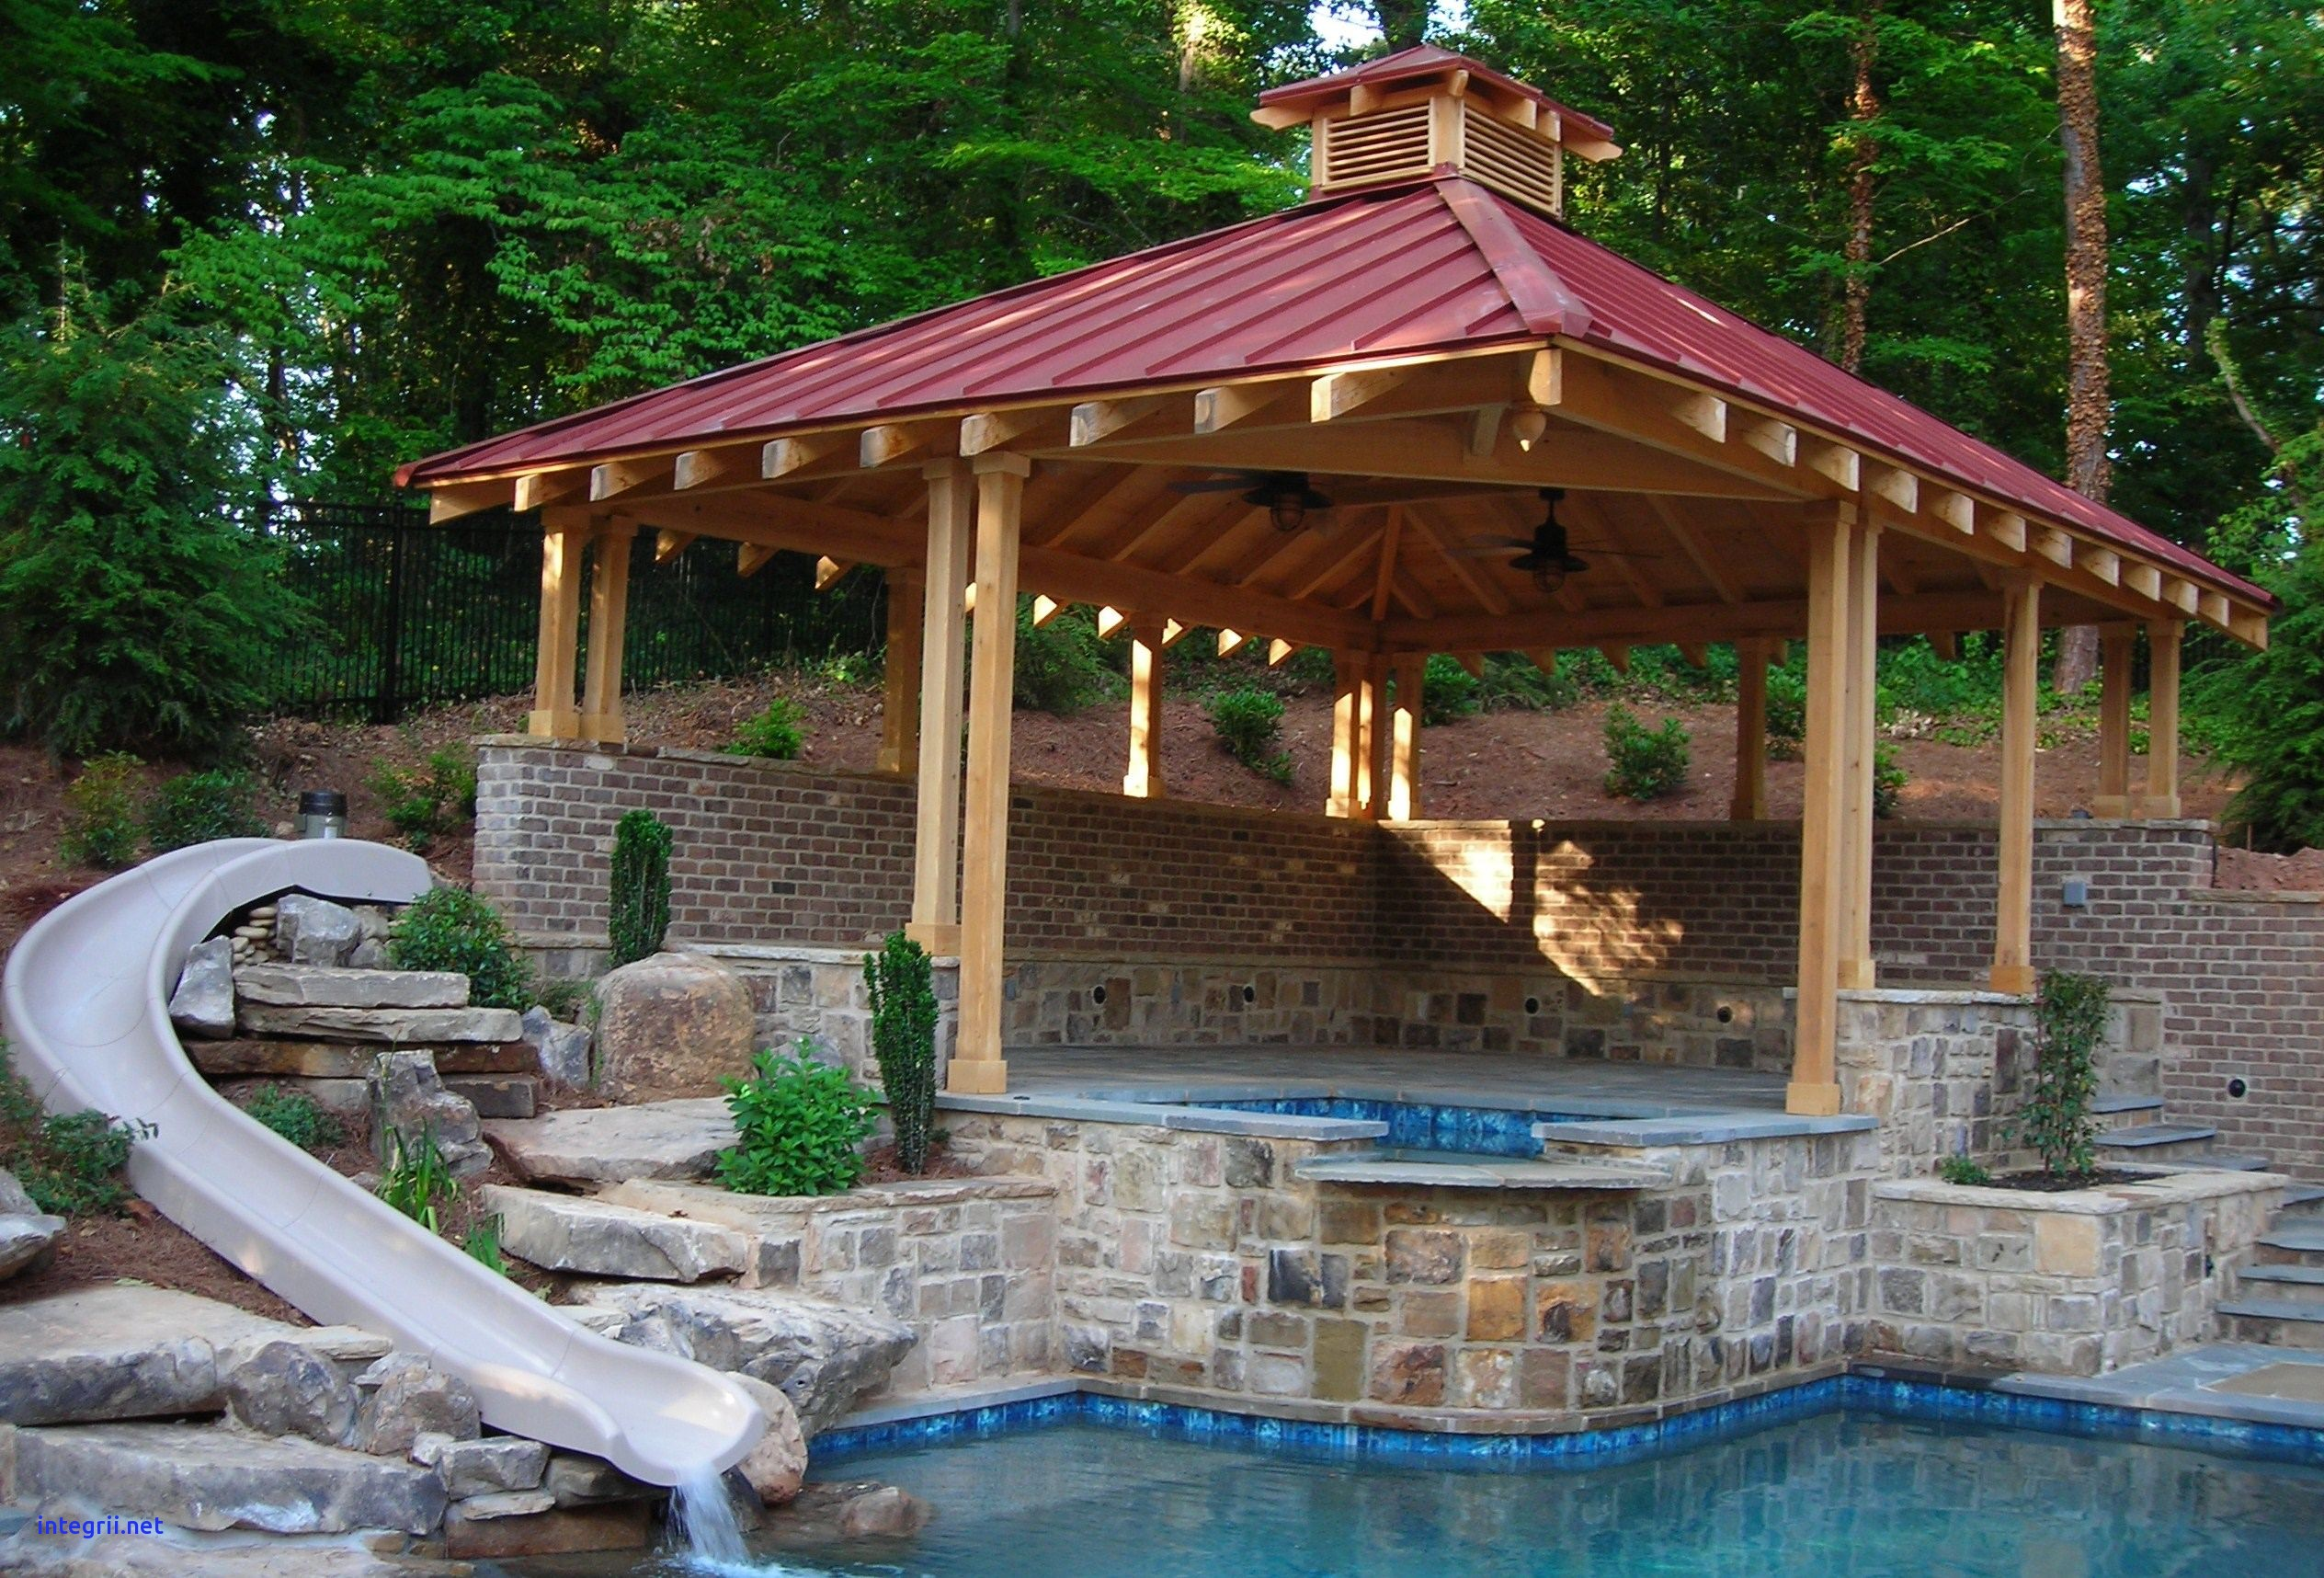 backyard gazebo awesome stunning backyard gazebo ideas WLUPZYN